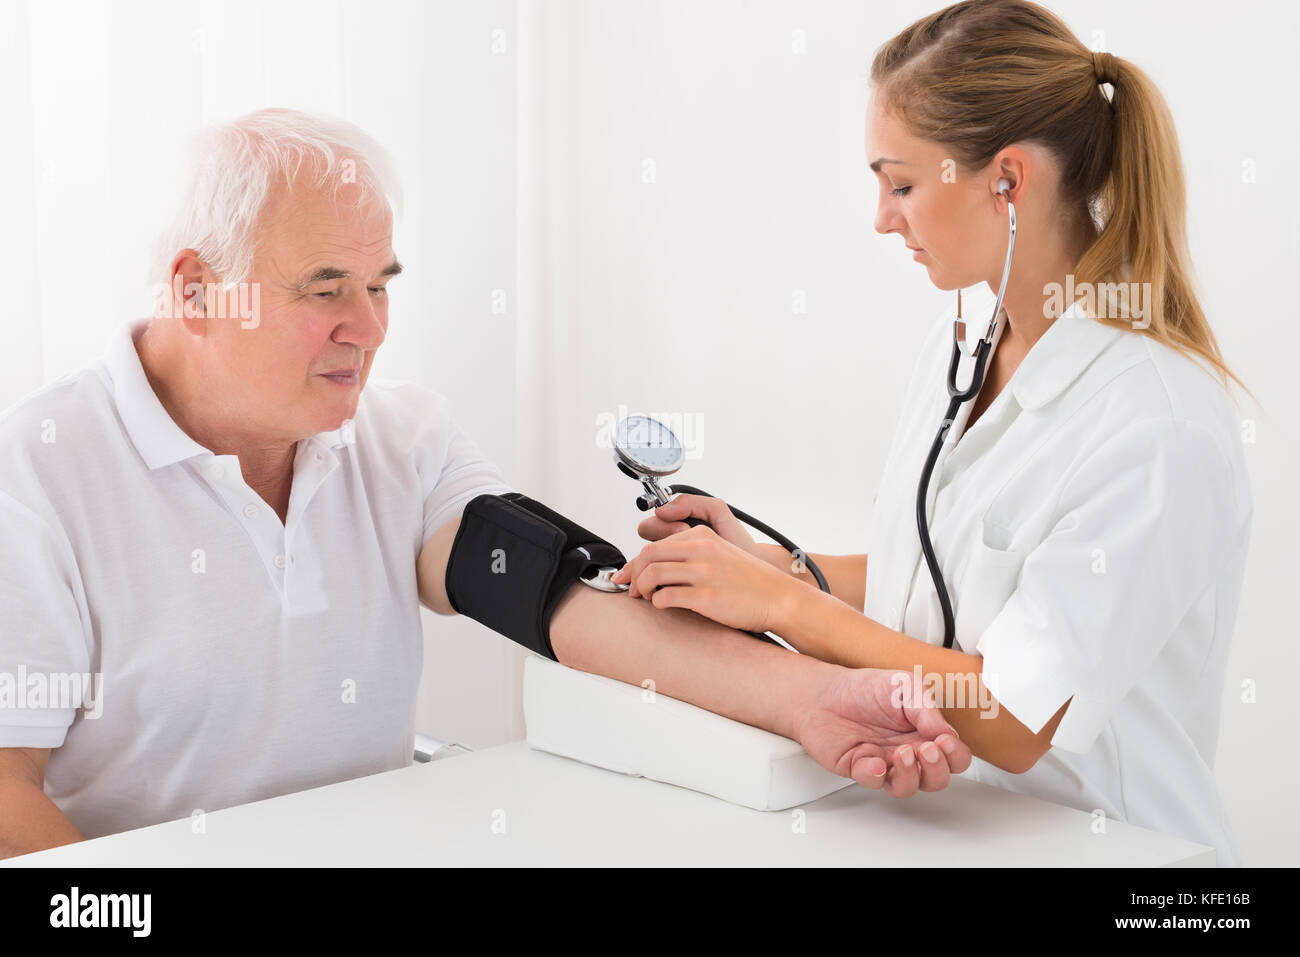 Young Female Doctor Checking Blood Pressure Of Senior Male Patient In Clinic - Stock Image